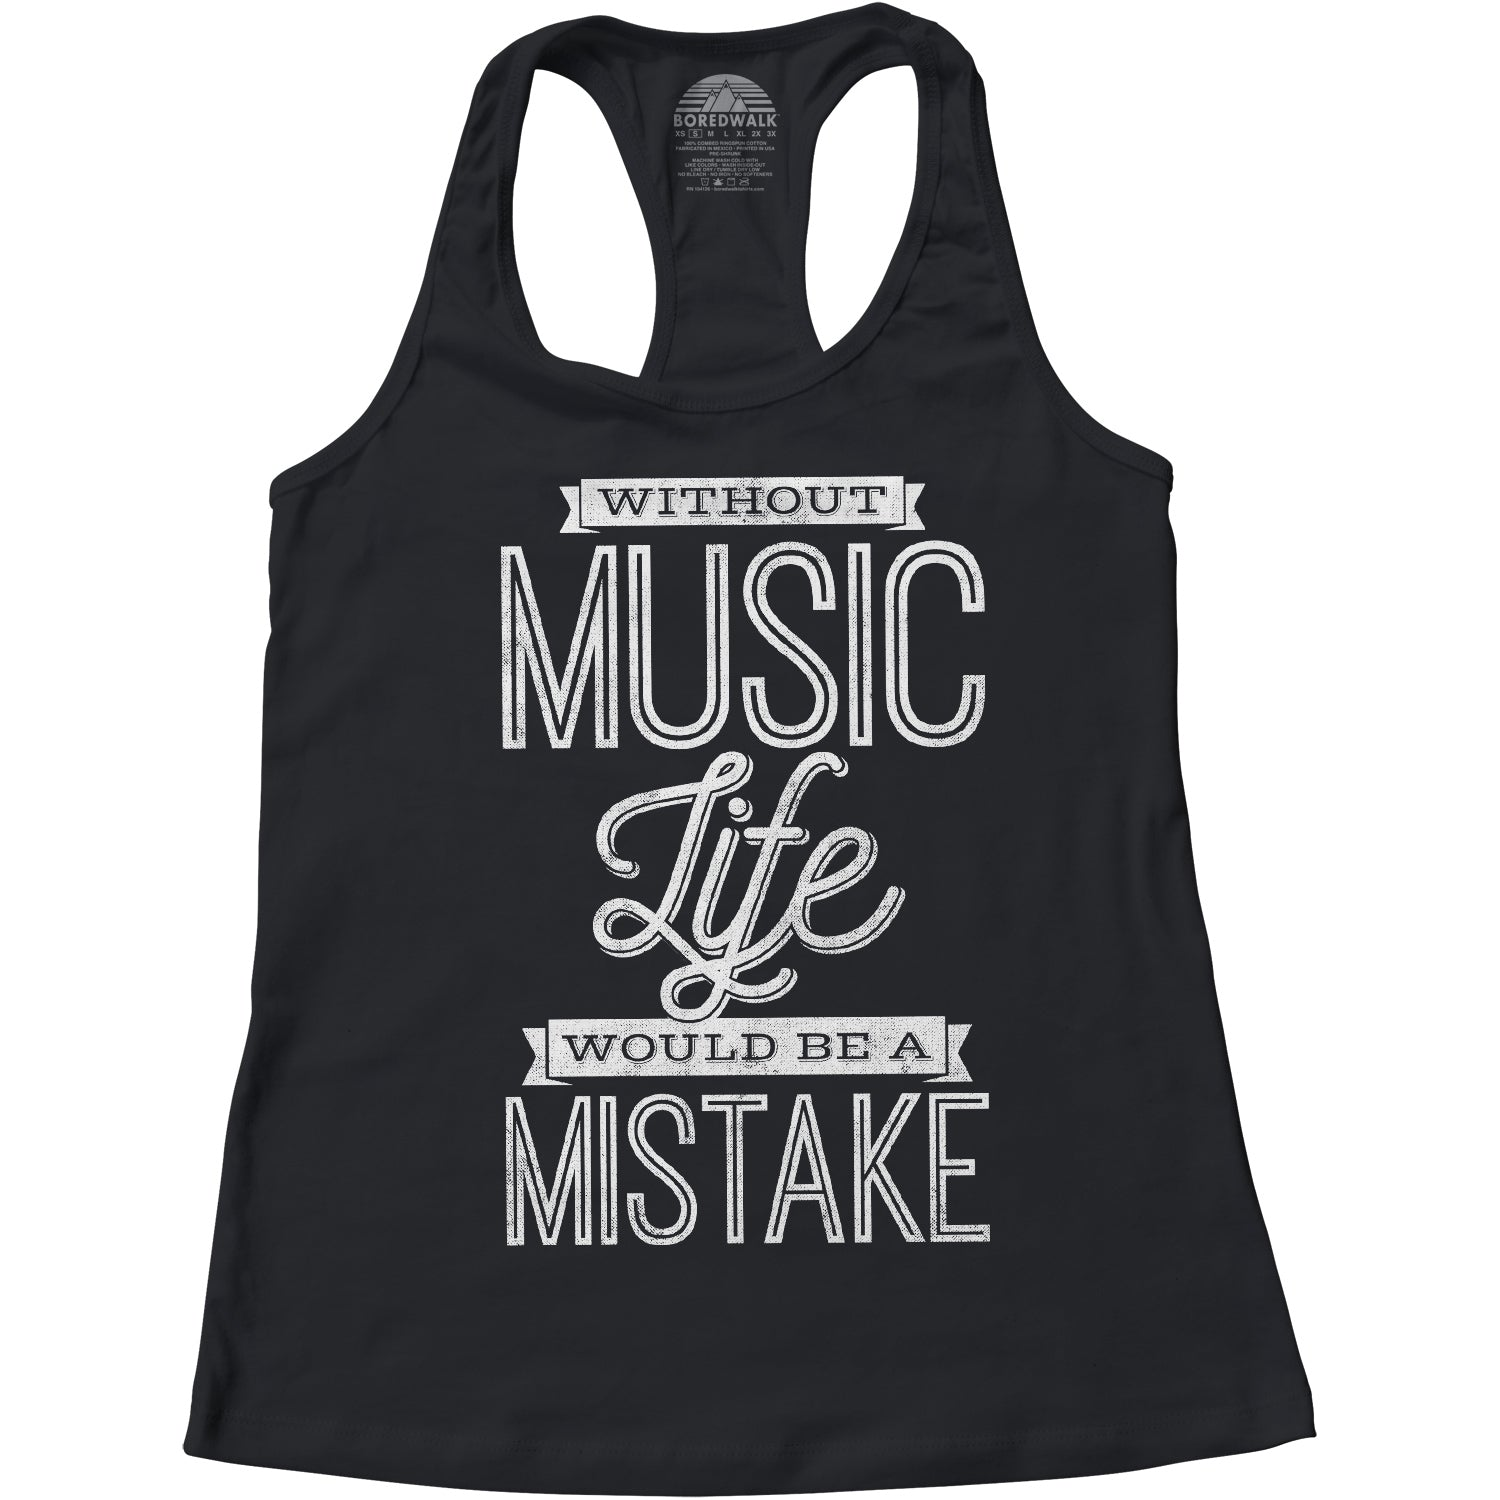 Women's Without Music Life Would be a Mistake Racerback Tank Top